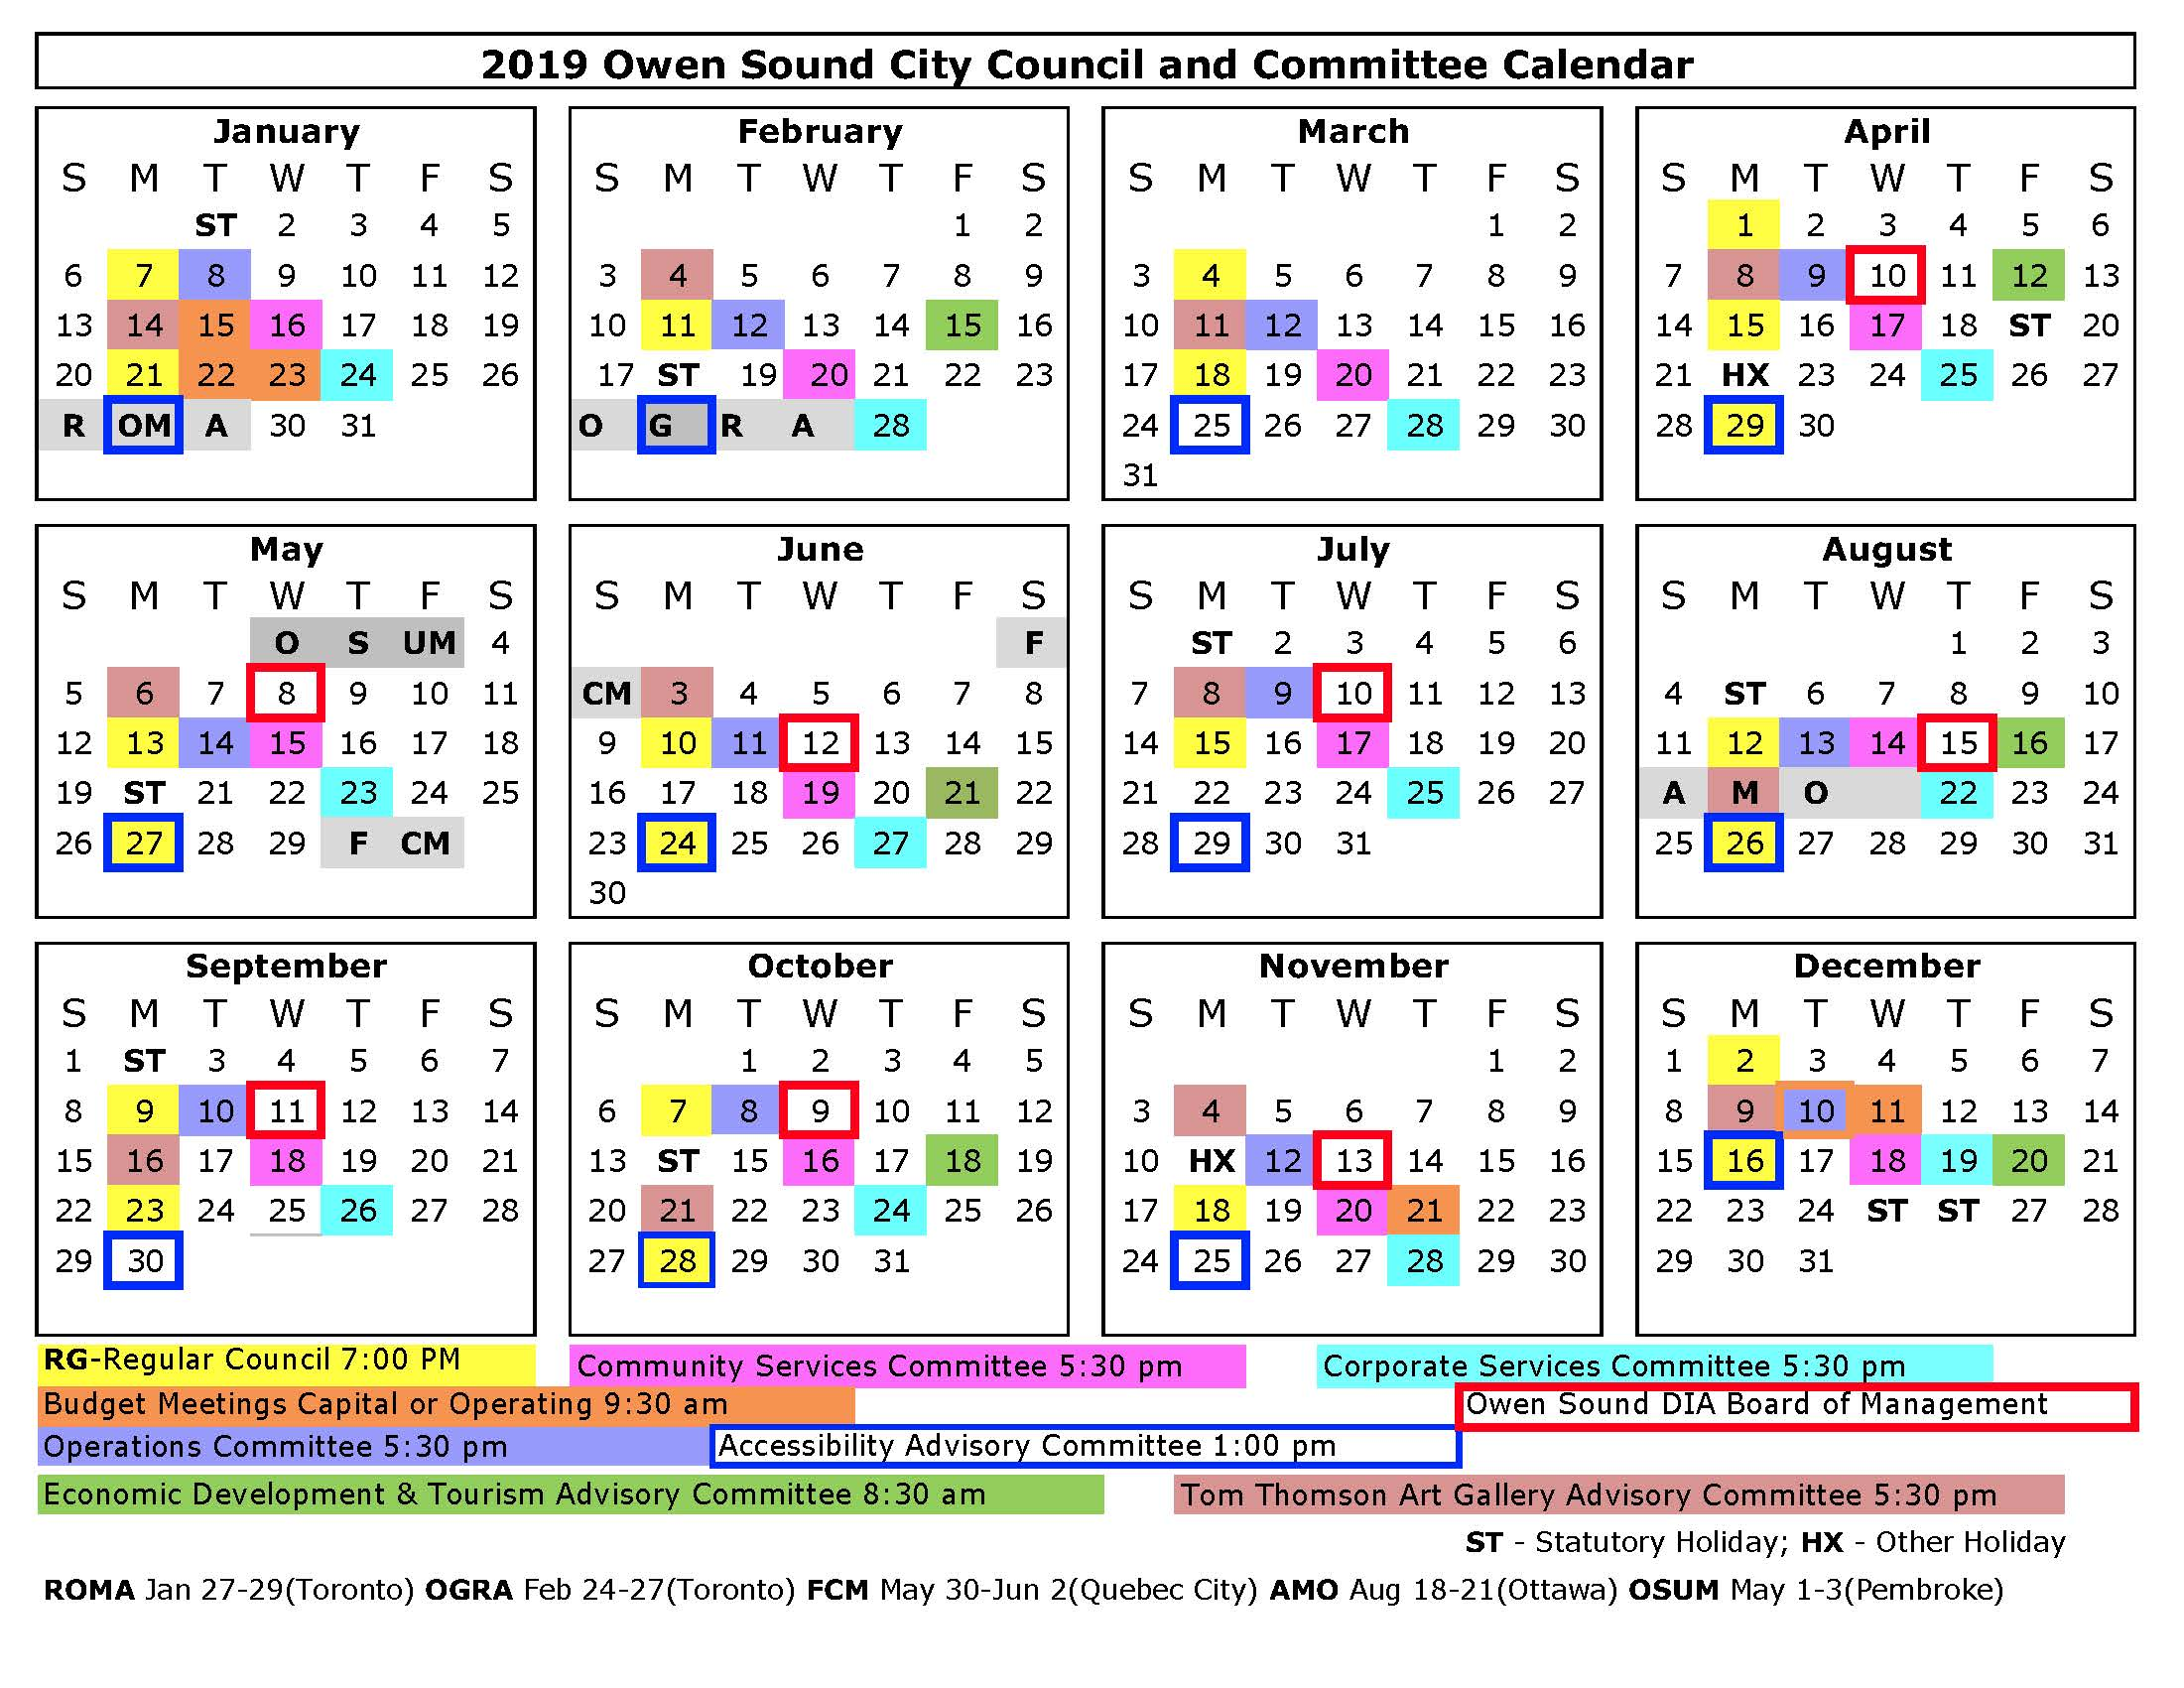 2019 Council and Committee Calendar